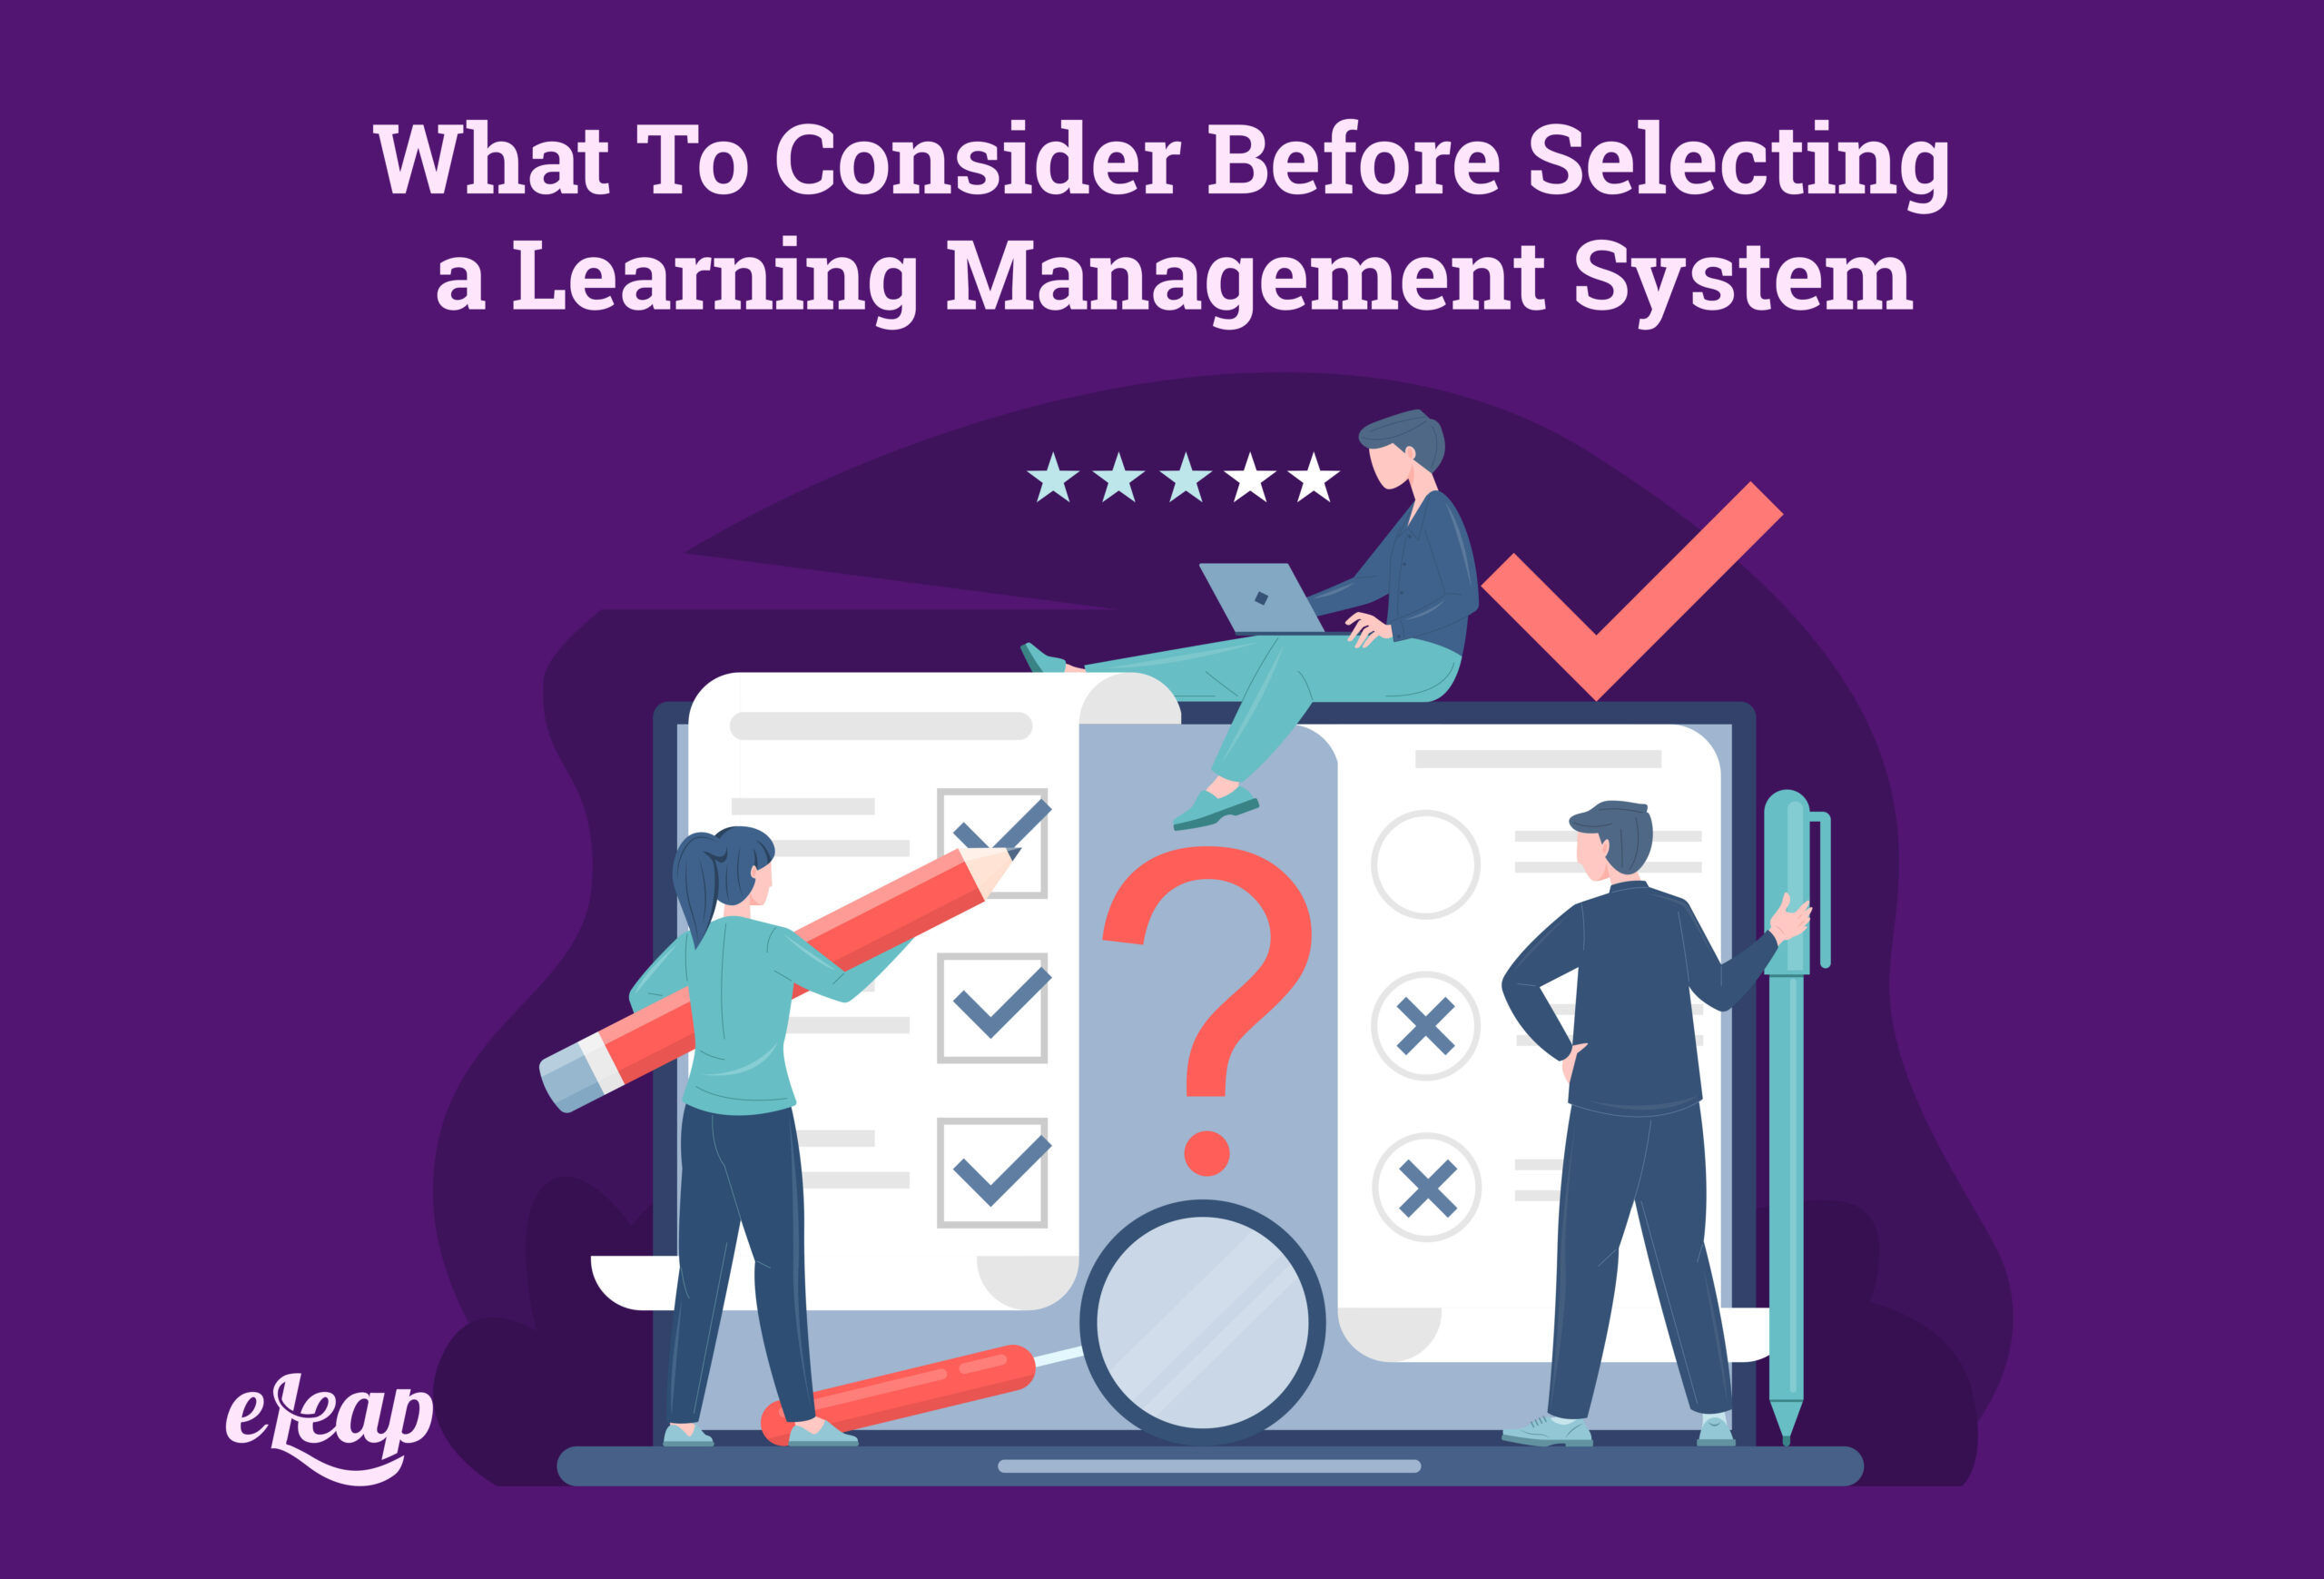 What To Consider Before Selecting a Learning Management System